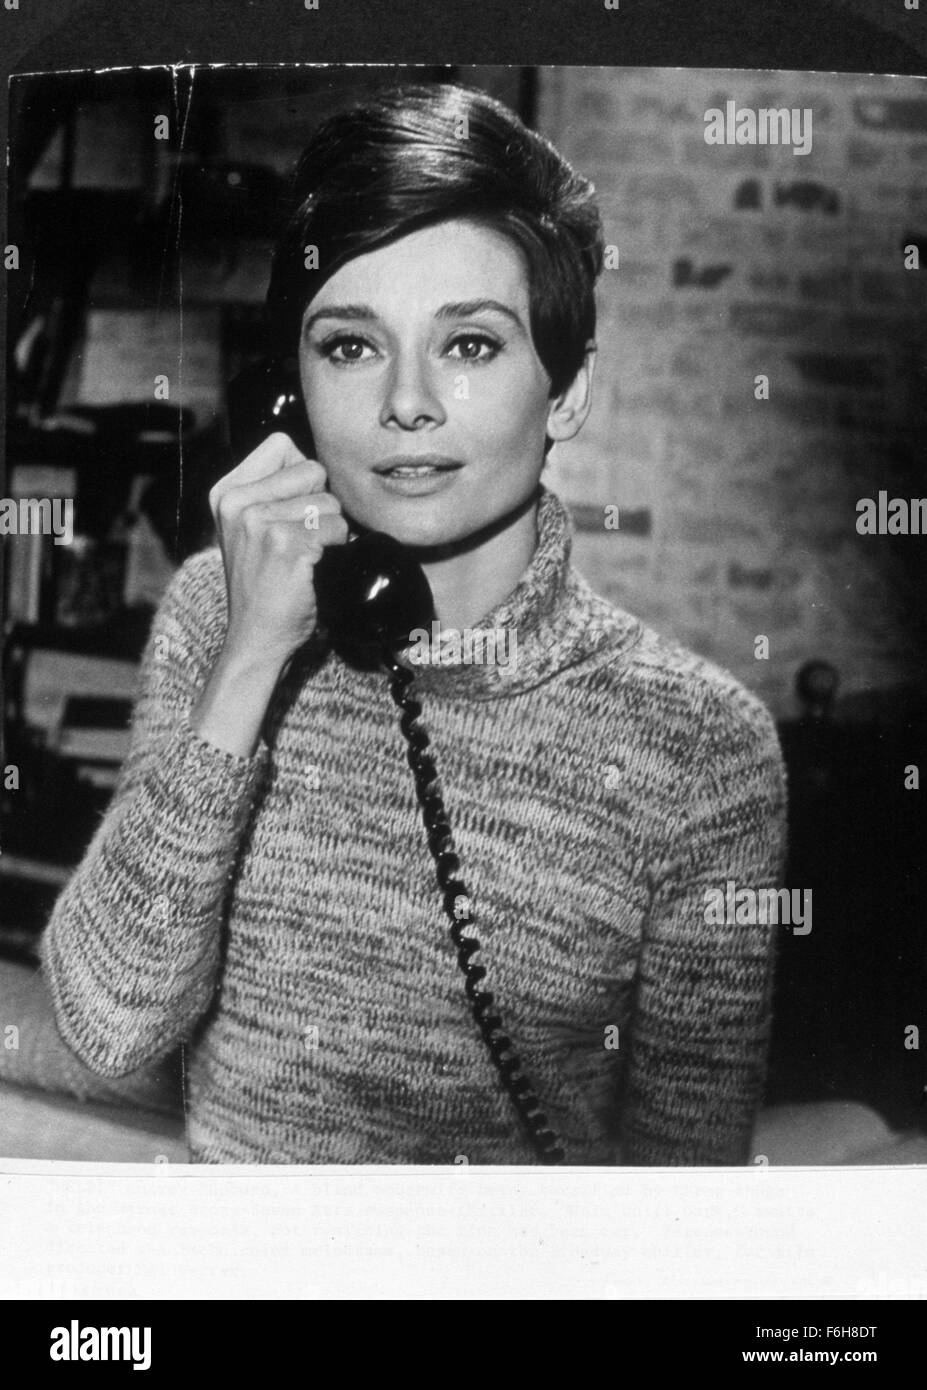 1967, Film Title: WAIT UNTIL DARK, Director: TERENCE YOUNG, Pictured: ACCESSORIES, AUDREY HEPBURN, TELEPHONE, TELEPHONING, - Stock Image